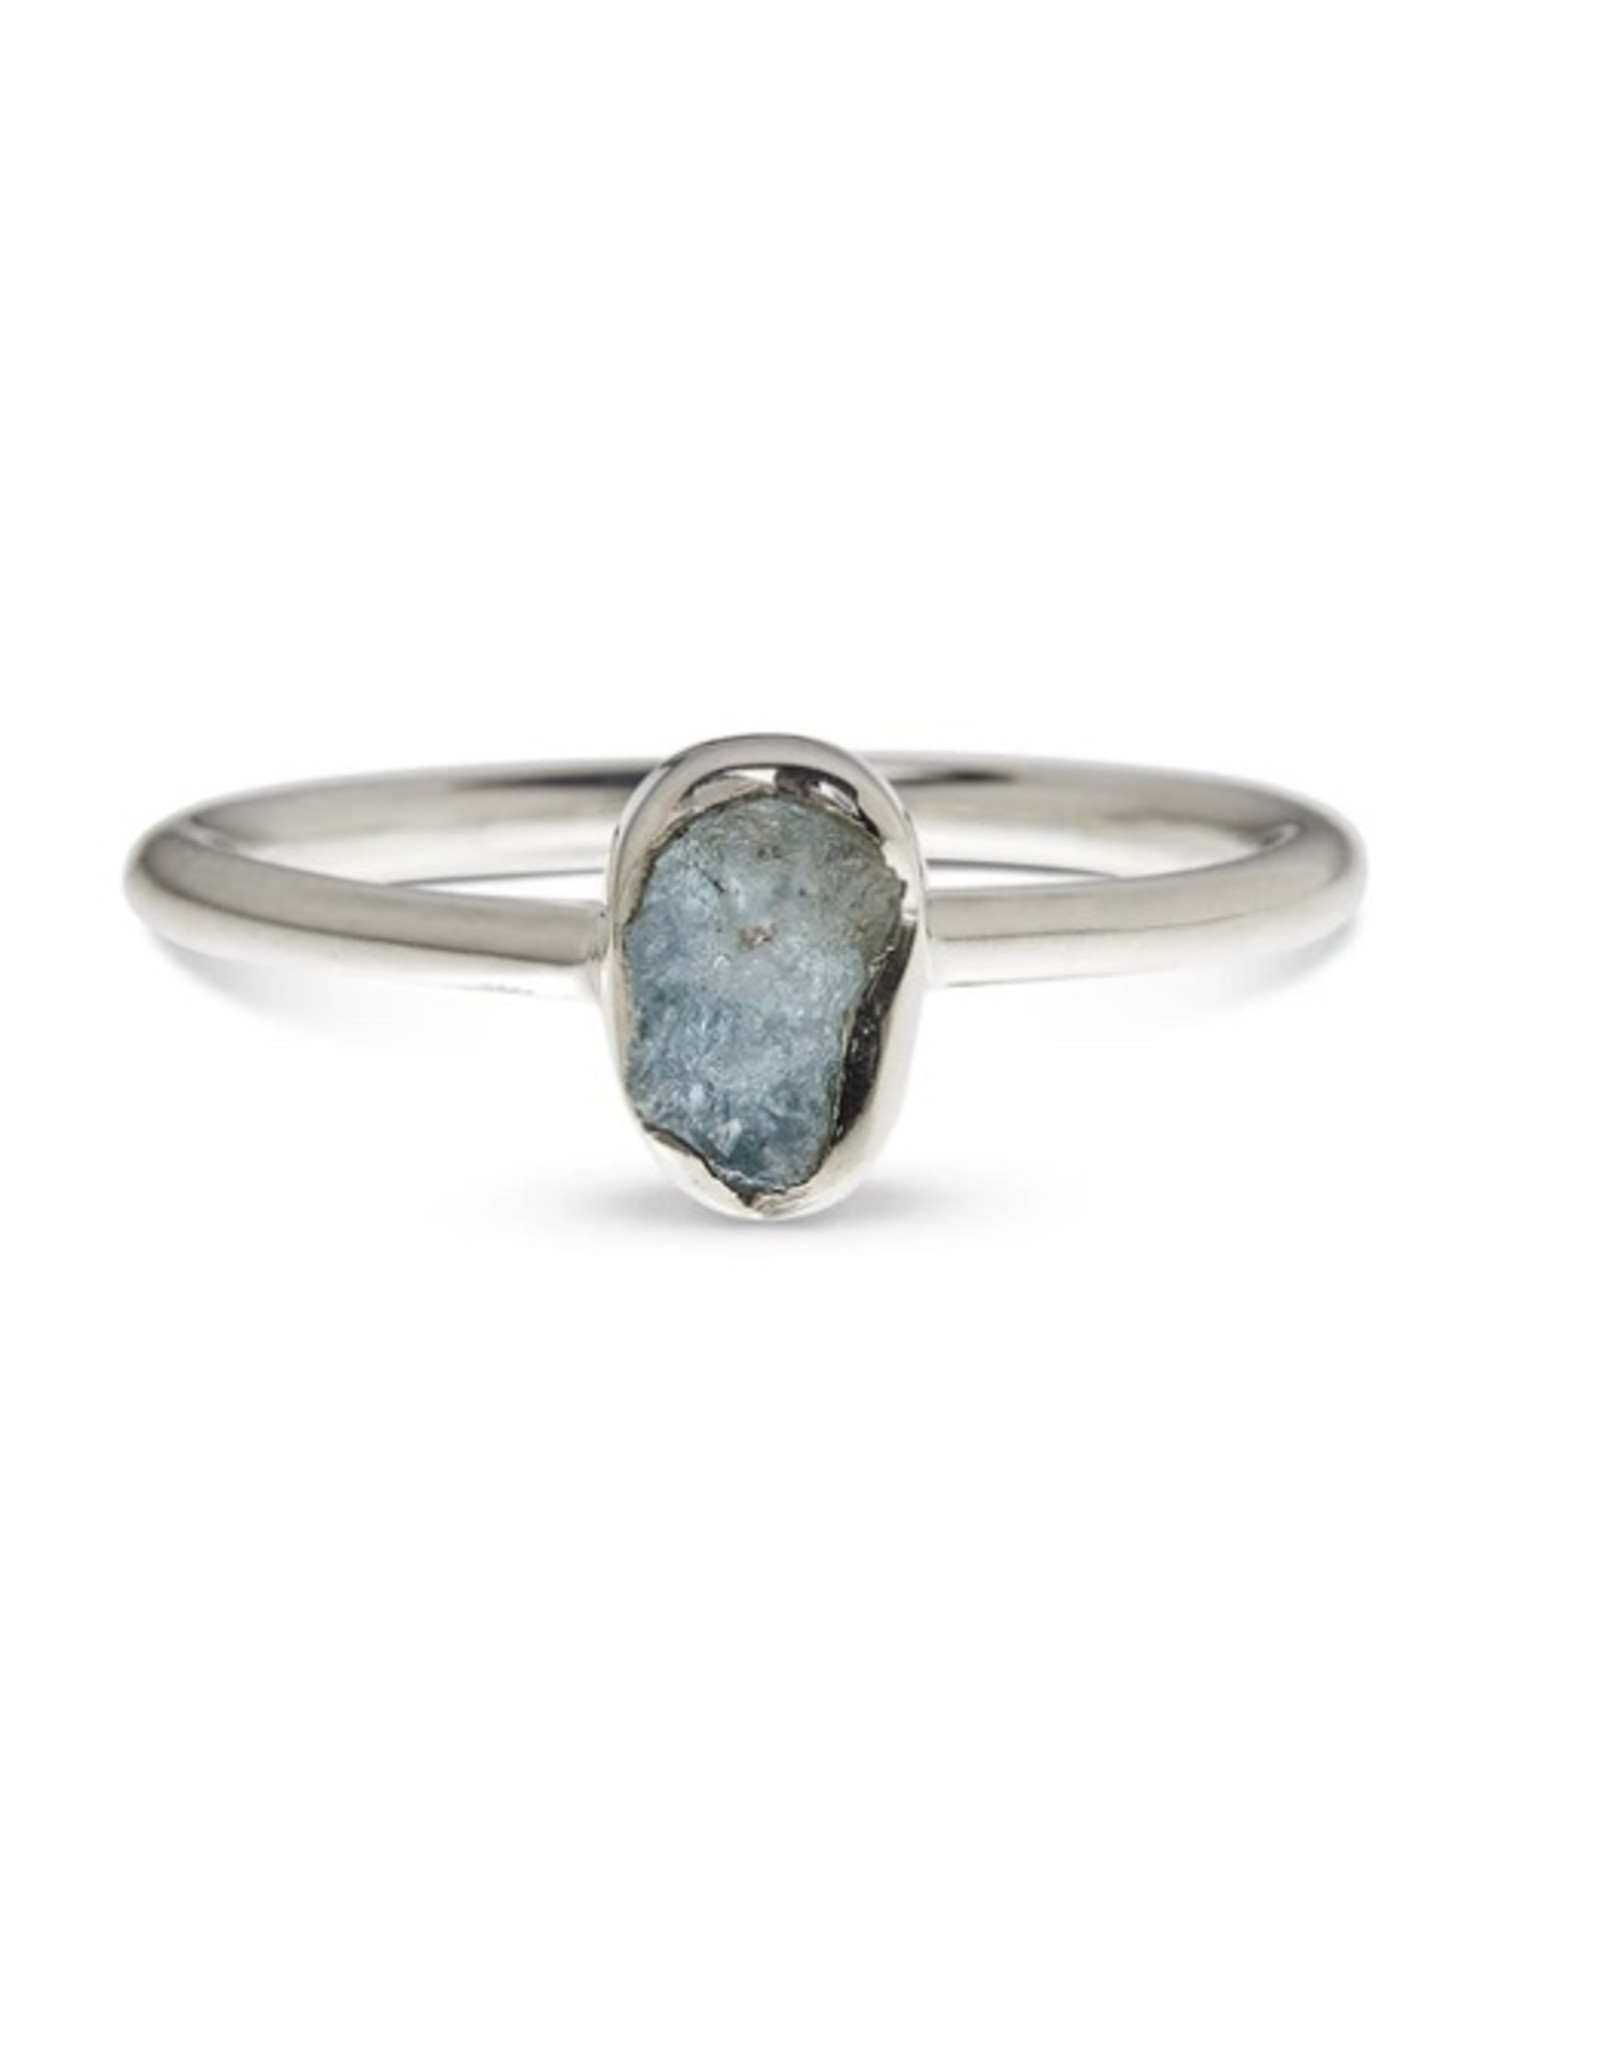 Aquamarine Ring - Size 9